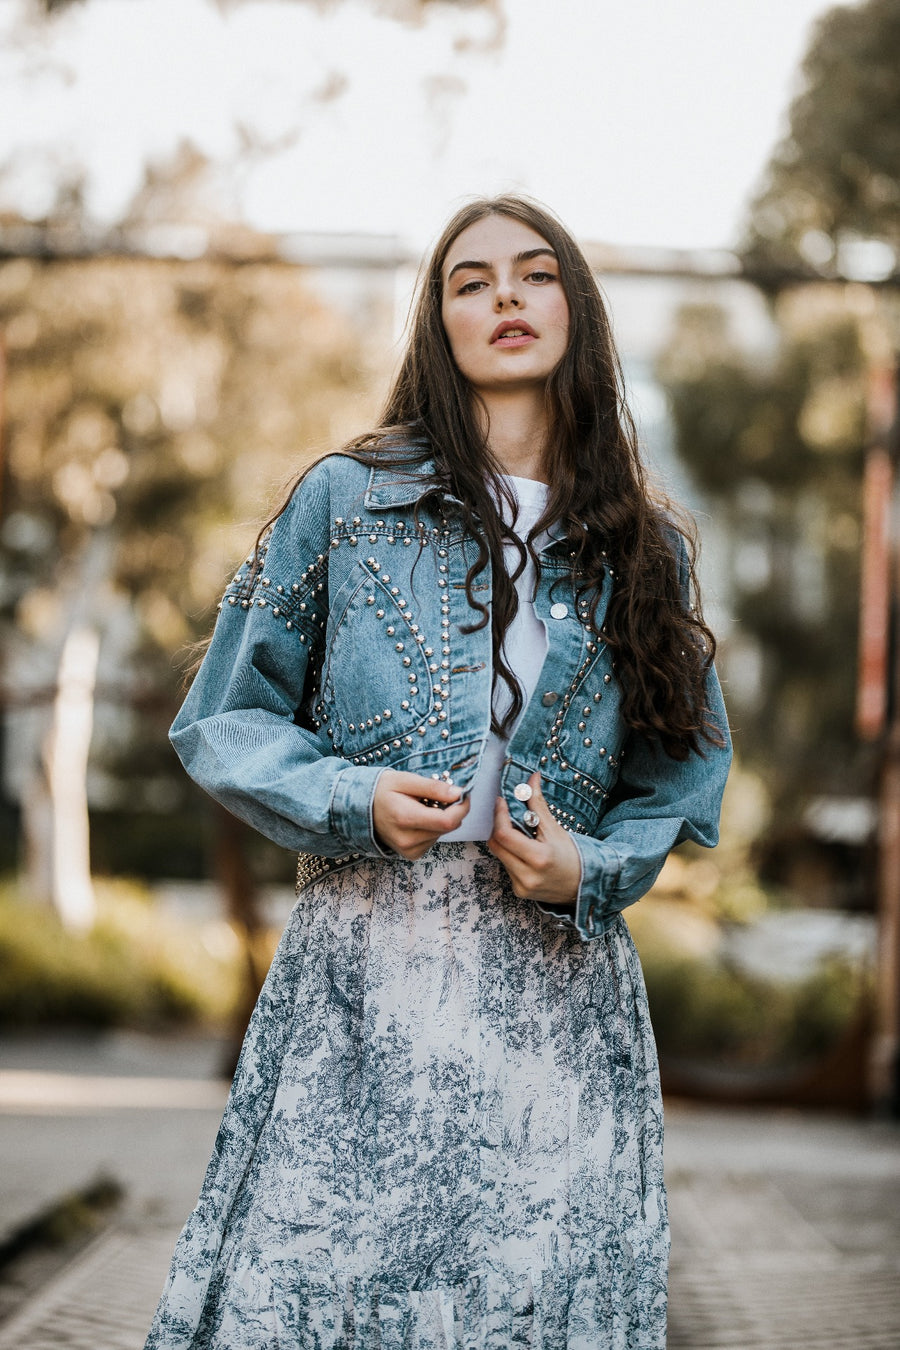 This chic looking denim jacket was designed in France. It has long sleeves and comes with a button-up front. The Tennessee jacket will bring a little touch of rock to any outfit with its numerous studs